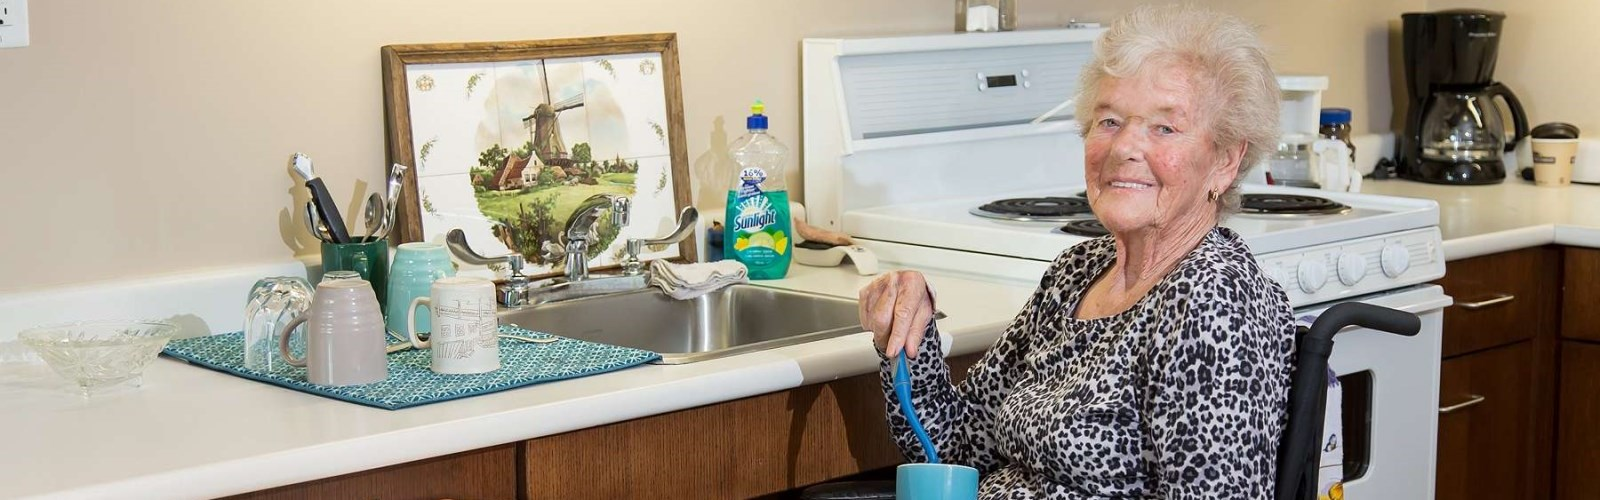 Sunnyside Supportive Housing resident in wheelchair cleaning dishes next to her sink.